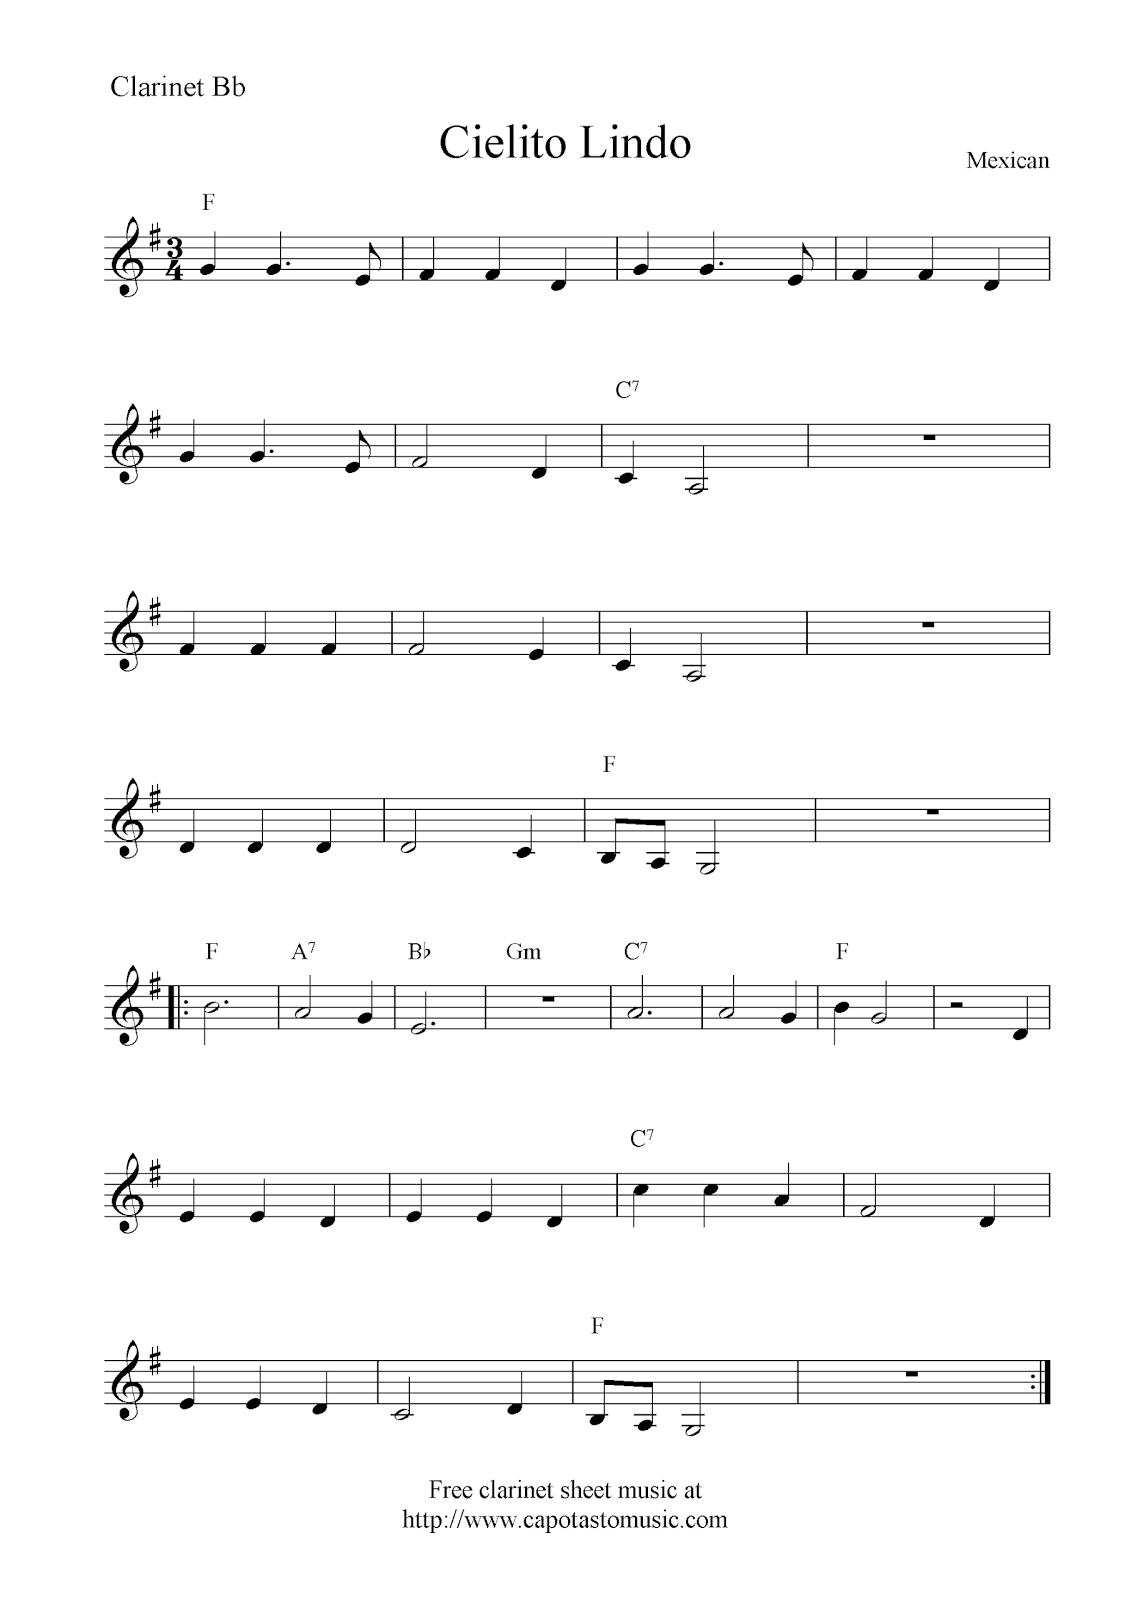 Cielito lindo free clarinet sheet music notes